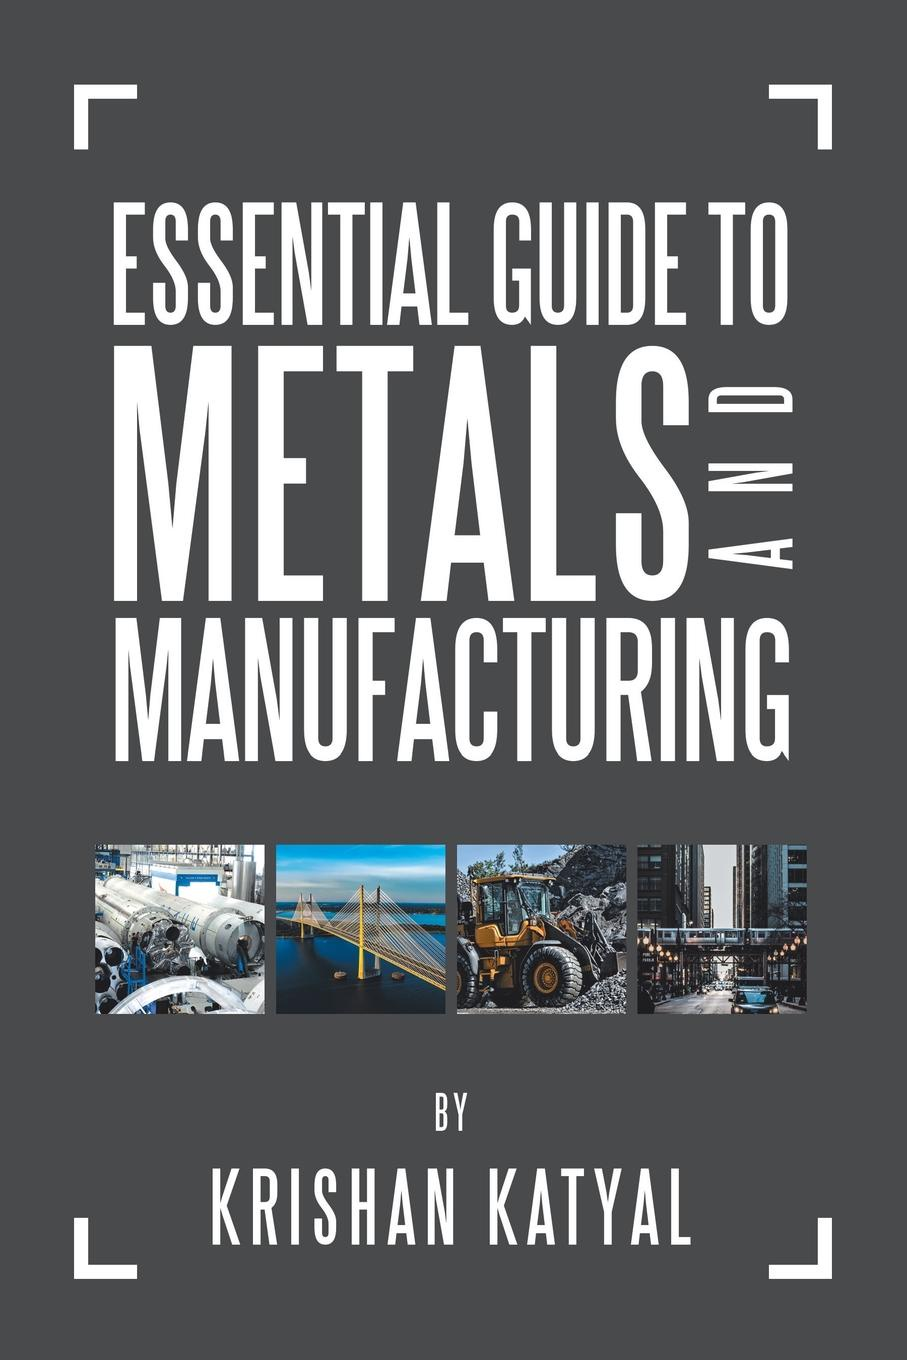 Essential Guide to Metals and Manufacturing This book is intended for new owners, engineers, technicians...